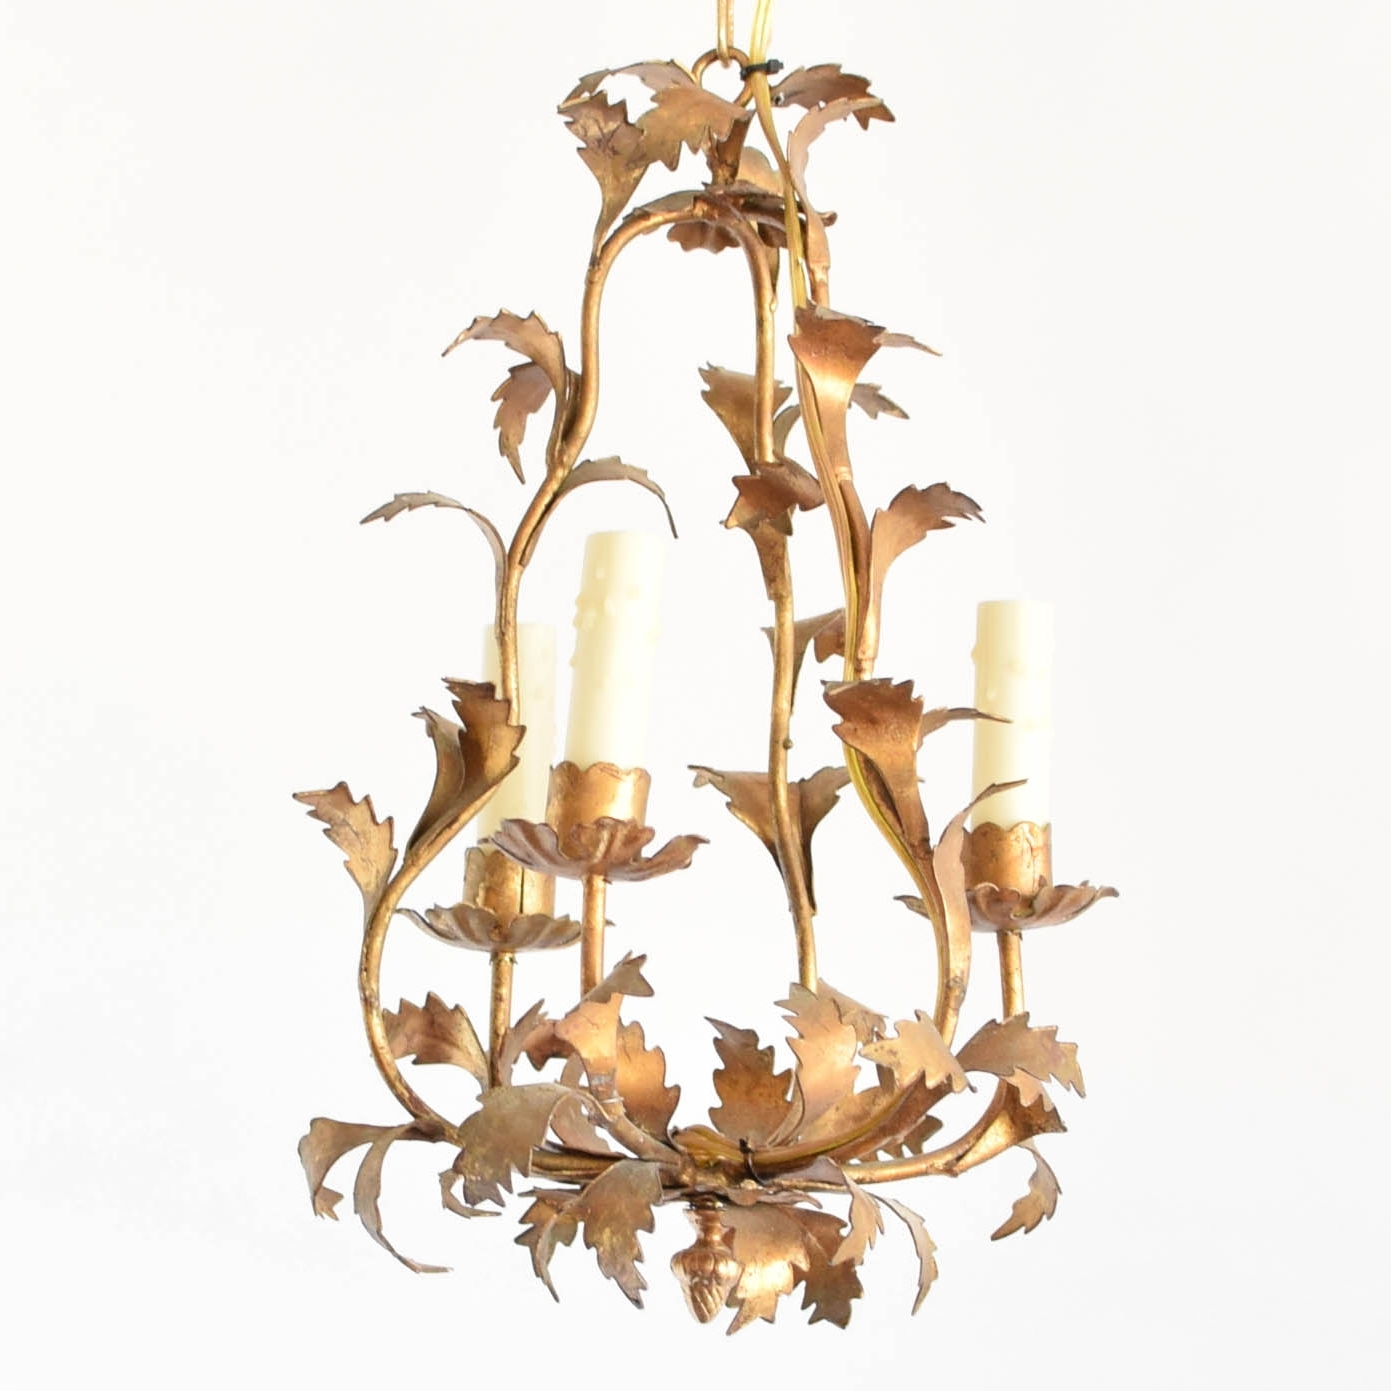 Vintage Italian Chandeliers In Widely Used Italian Gold Leaf Chandelier – The Big Chandelier (View 12 of 15)